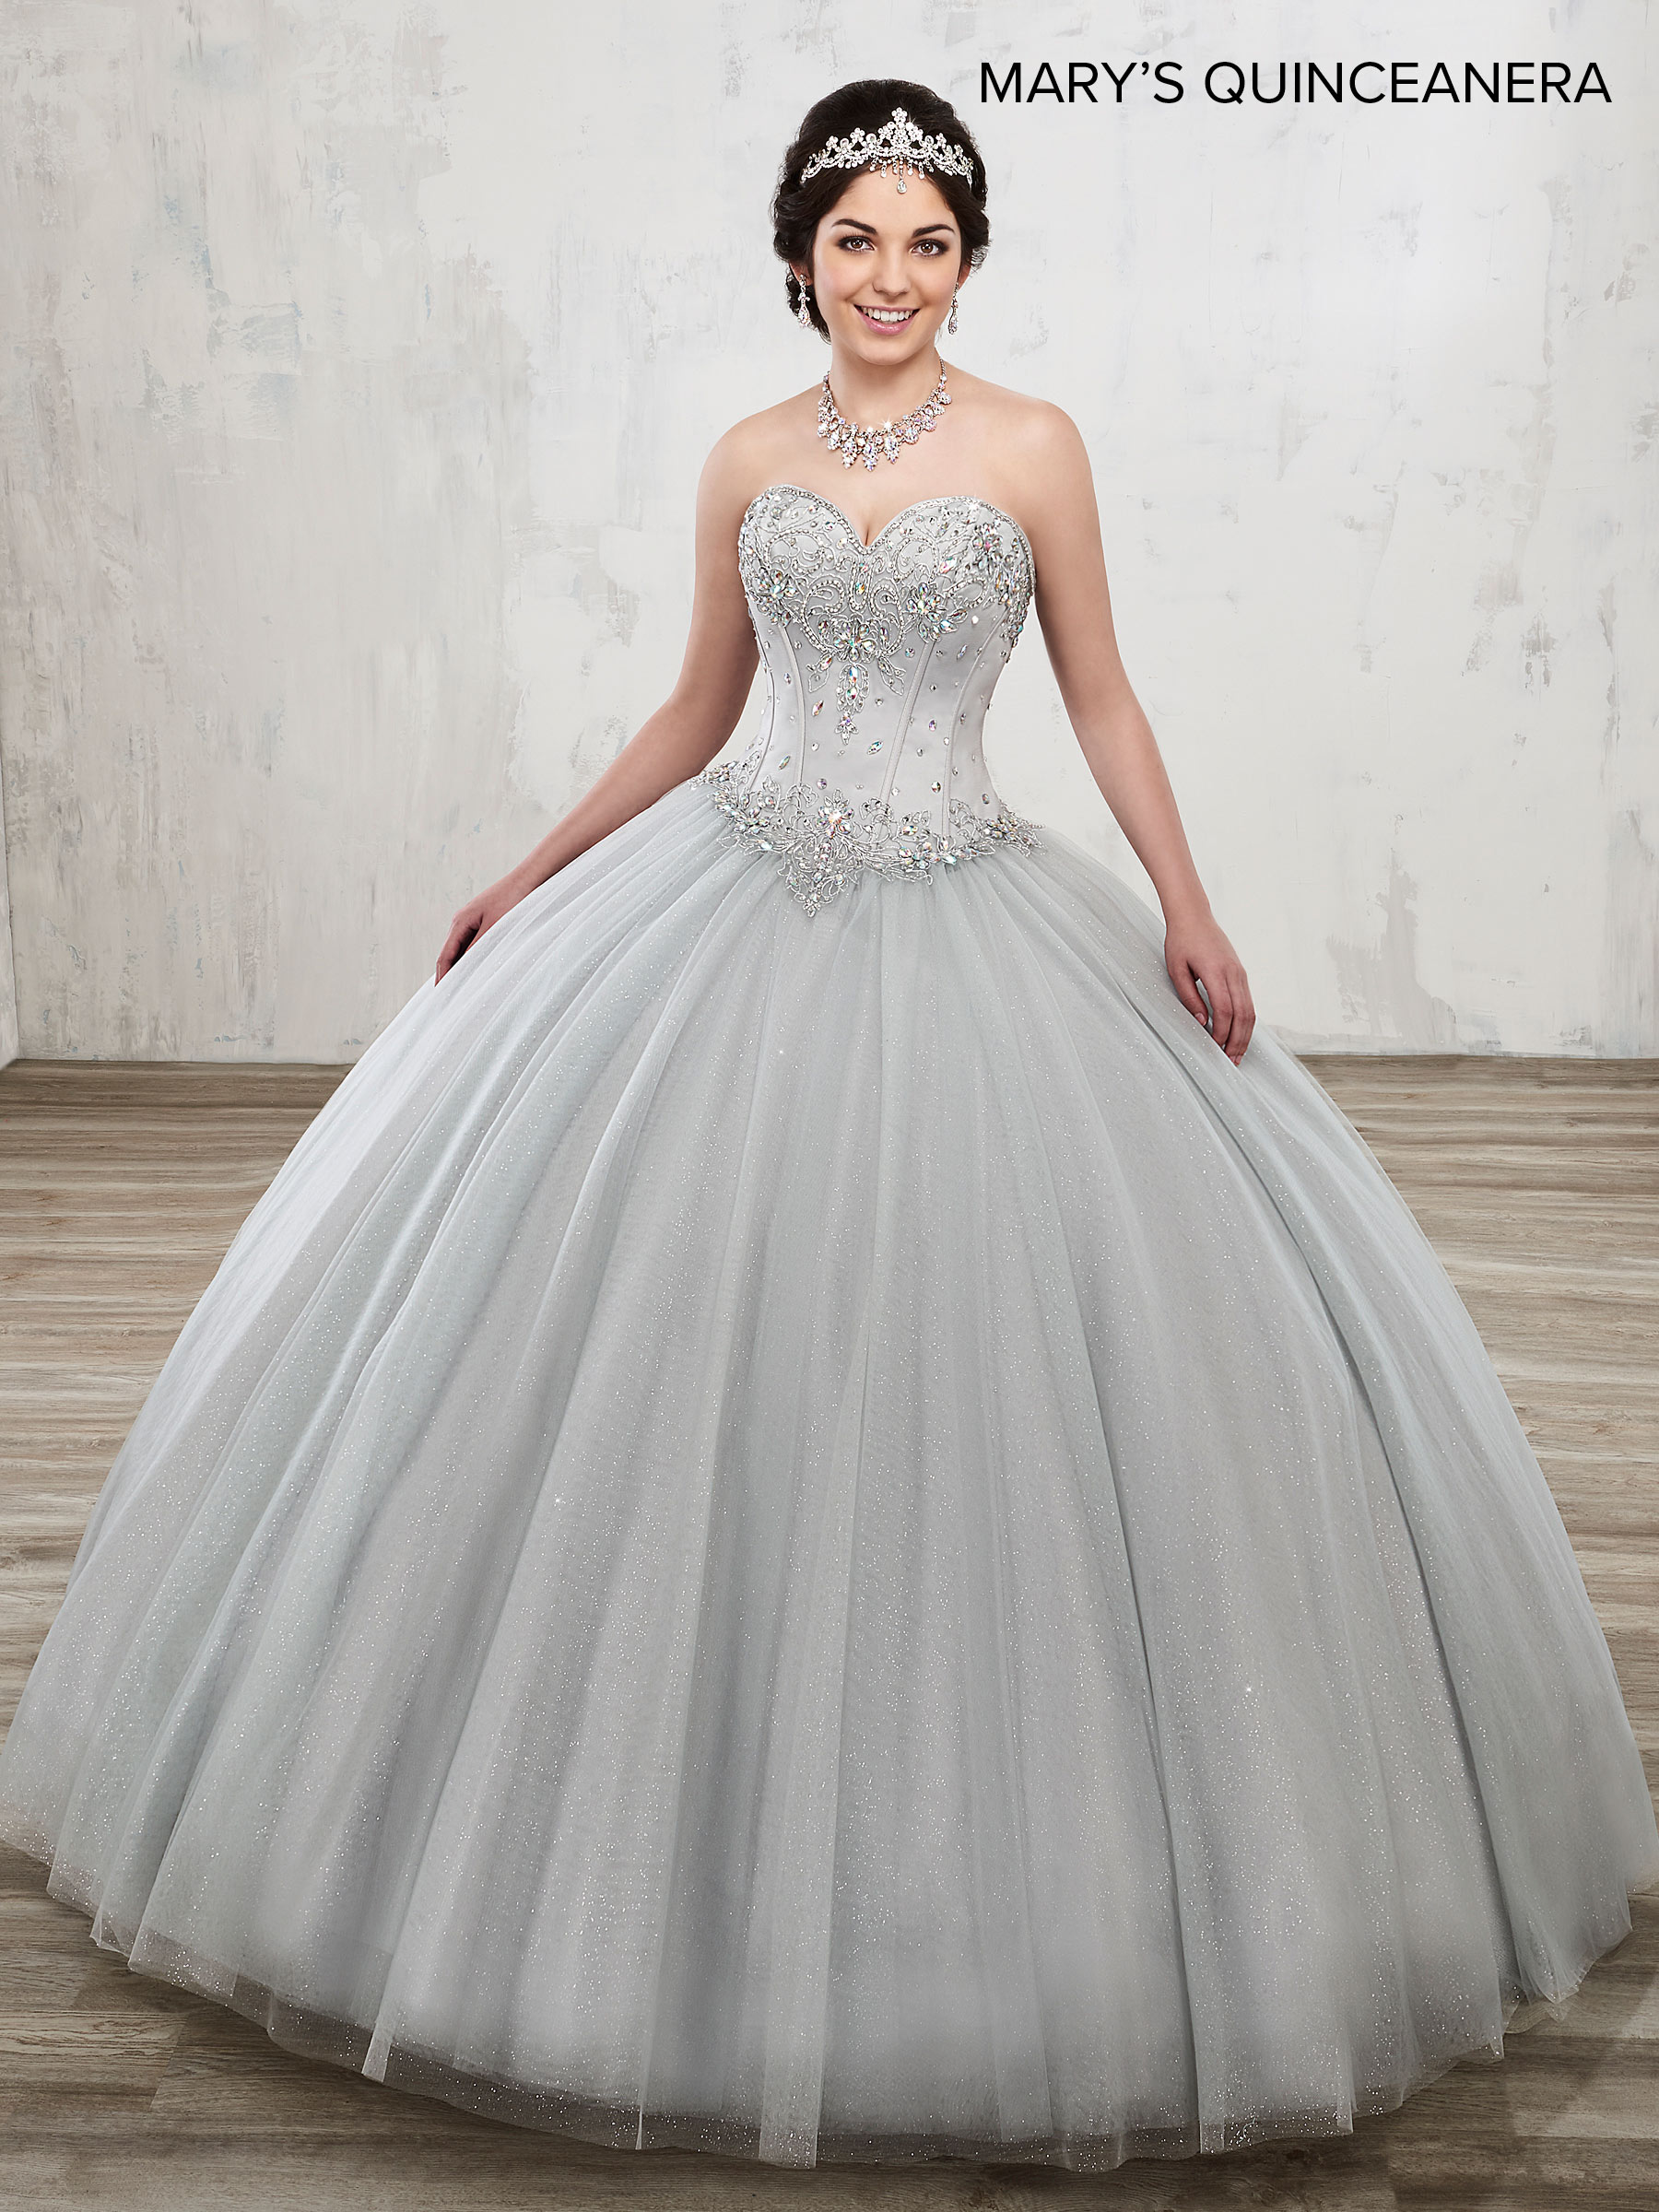 Marys Quinceanera Dresses | Style